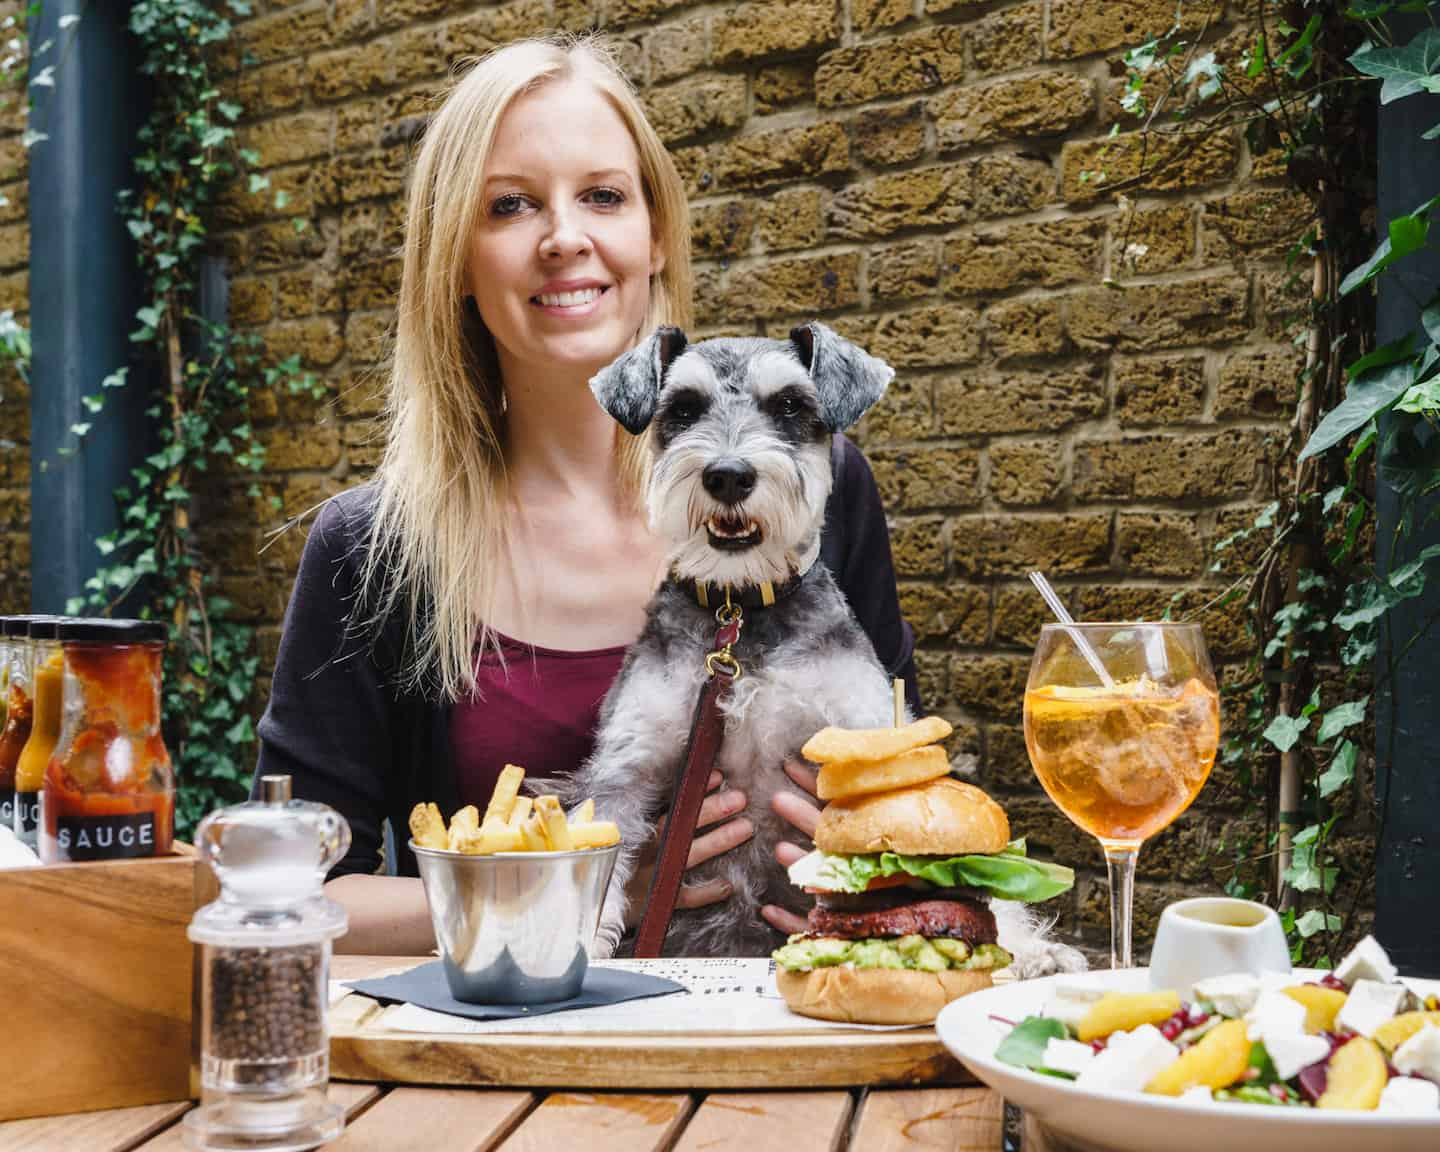 My Dog Friendly London By Rusty Red The Schnauzer | Dog Friendly Shoreditch and Hoxton Bike Shed 2